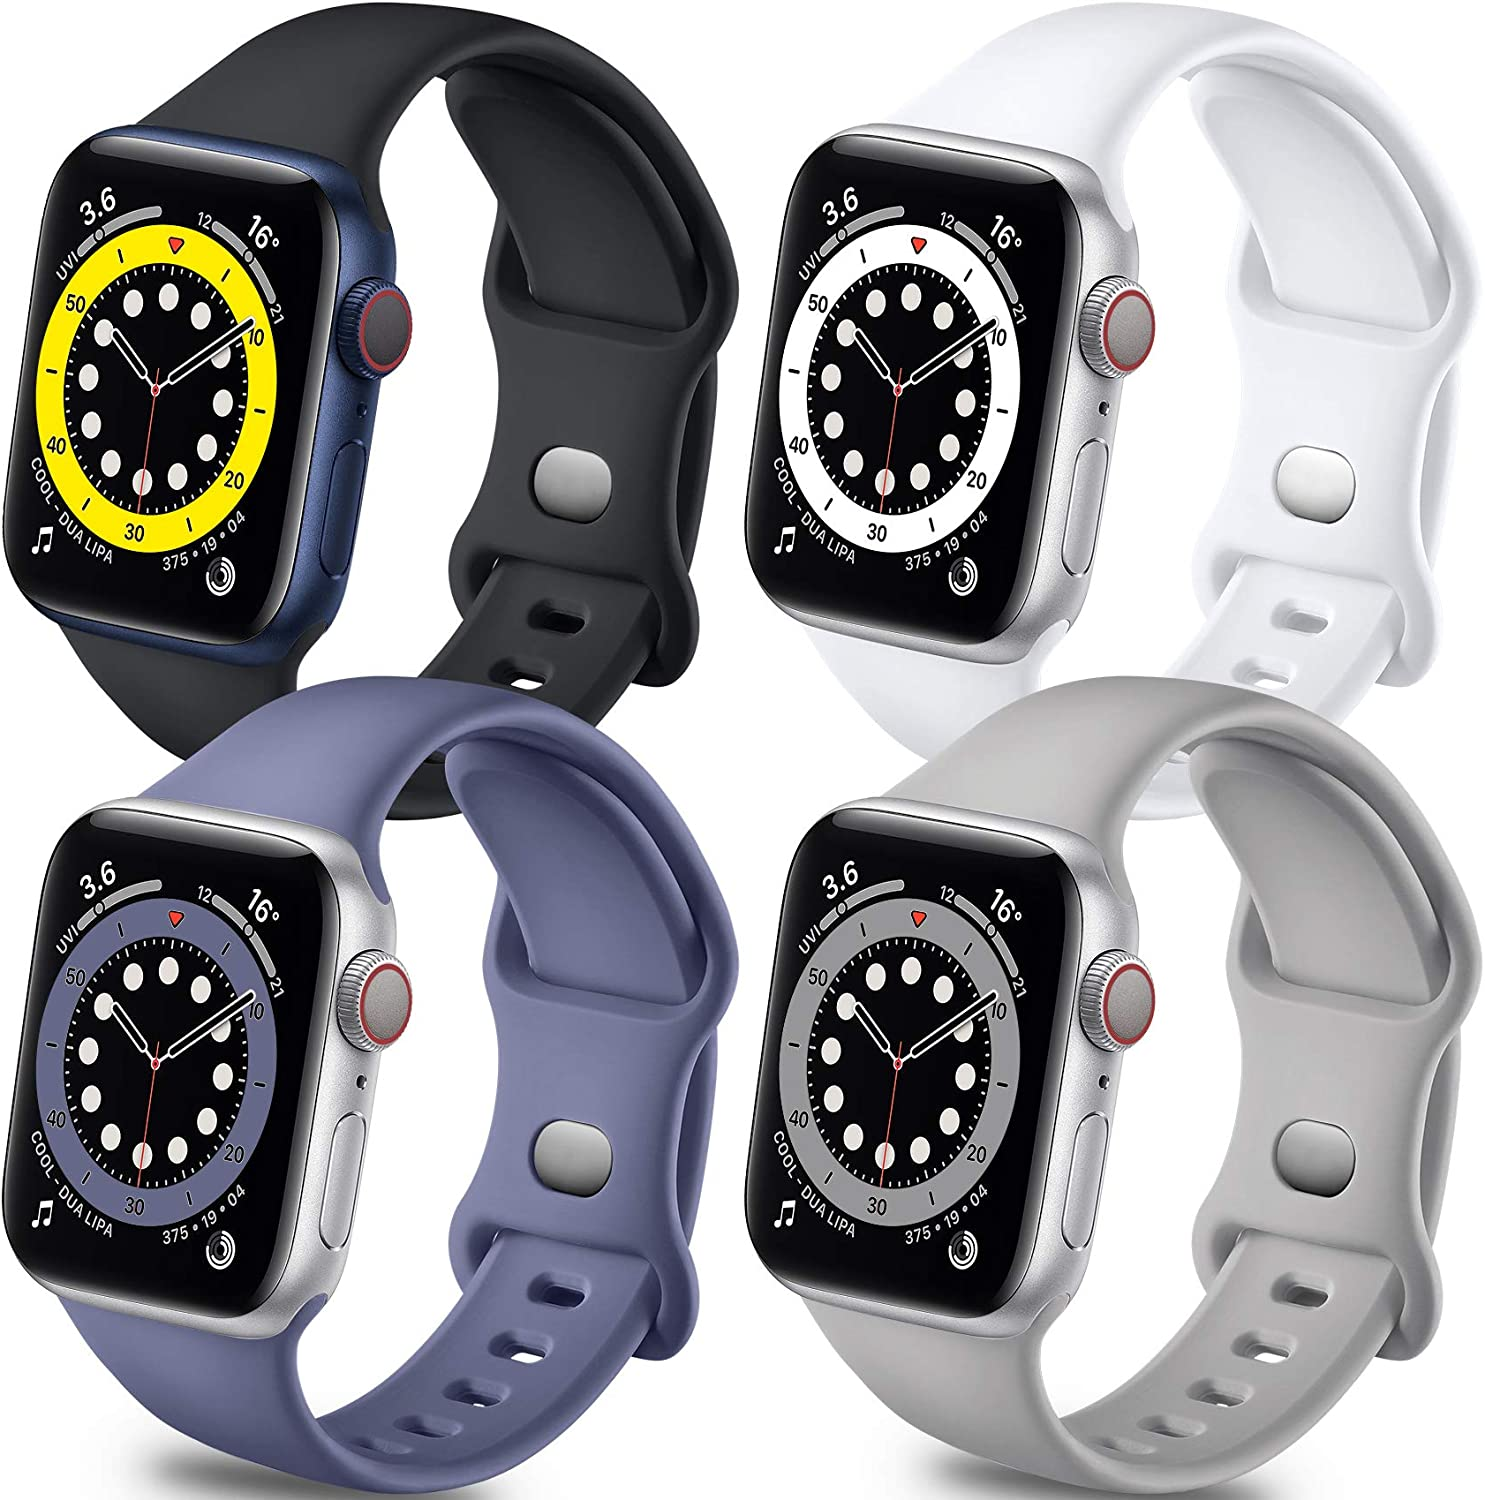 Getino Sport Band Compatible with Apple Watch 40mm 38mm for Women Men, Stylish Durable Soft Silicone Bands for iWatch SE & Series 6 5 4 3 2 1, 4 Pack, Black, White, Pebble Gray,Blue Gray, M/L